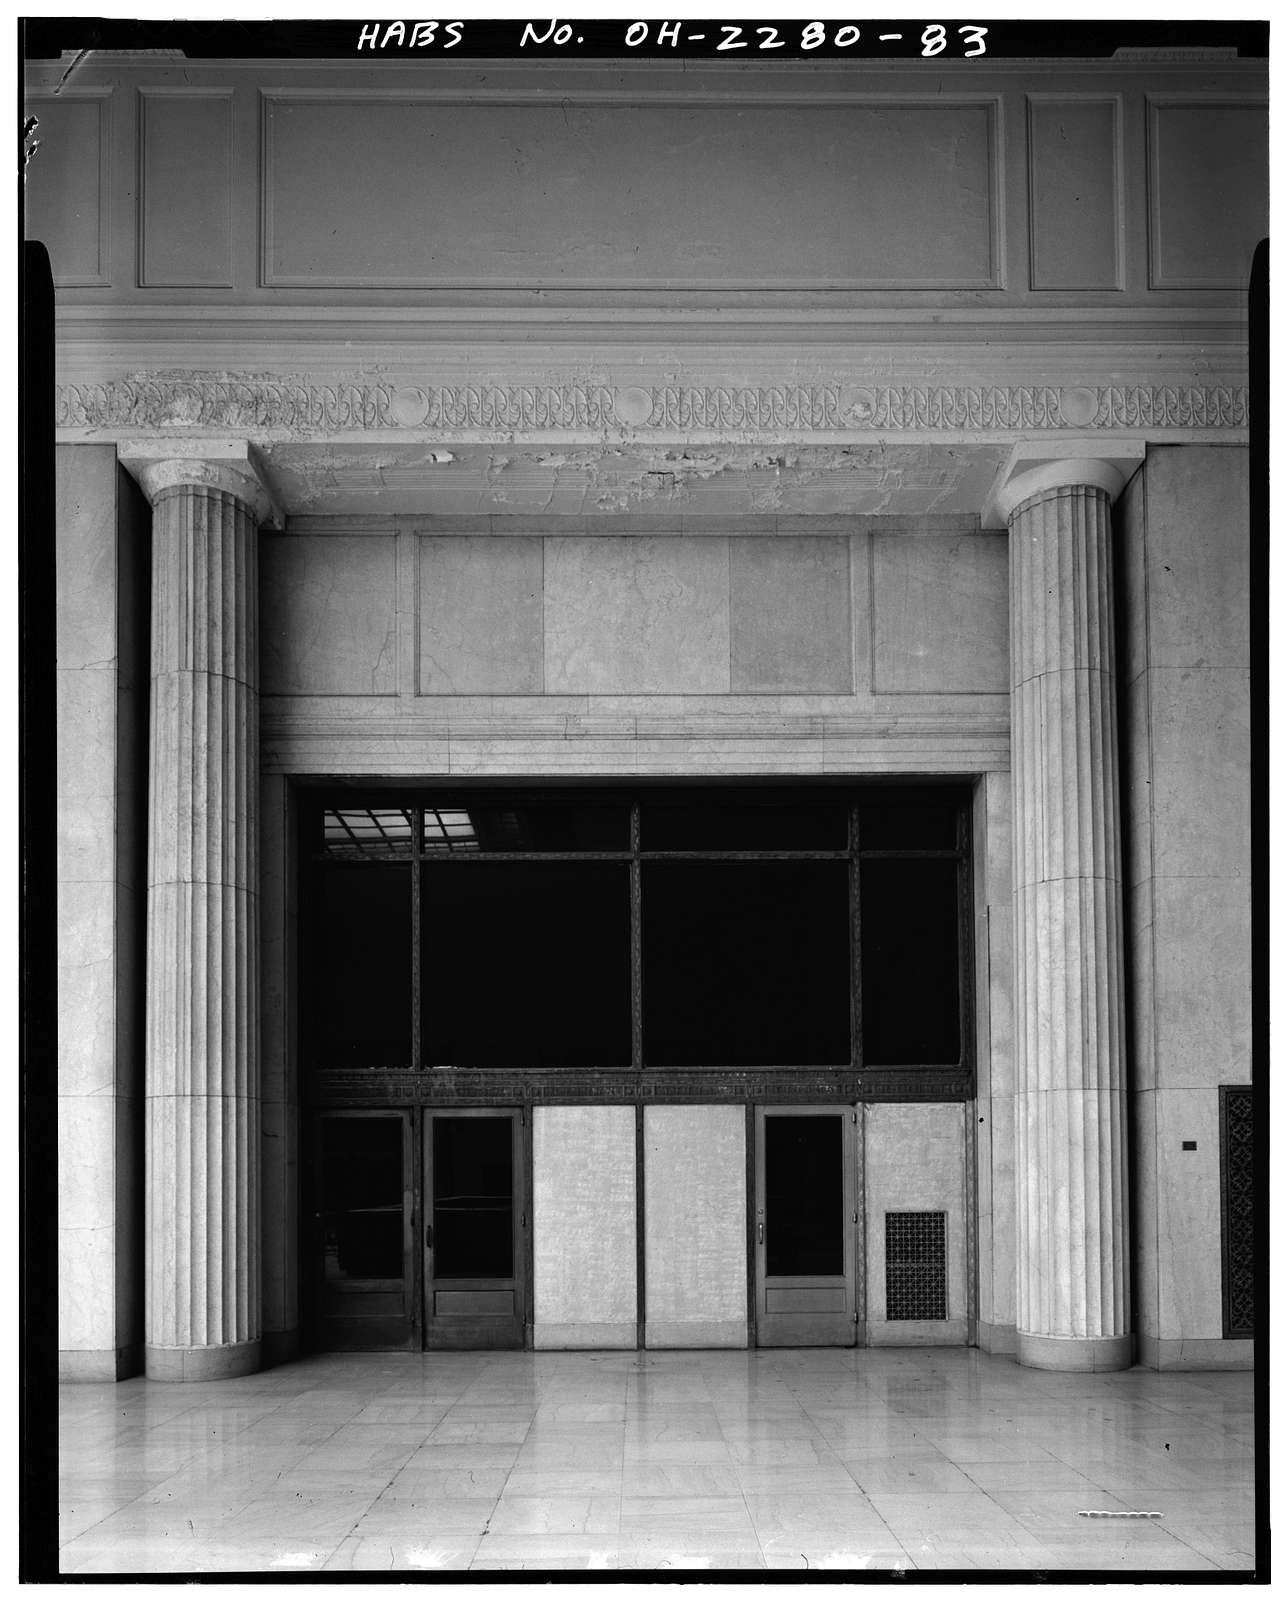 Terminal Tower Building, Cleveland Union Terminal, 50 Public Square, Cleveland, Cuyahoga County, OH